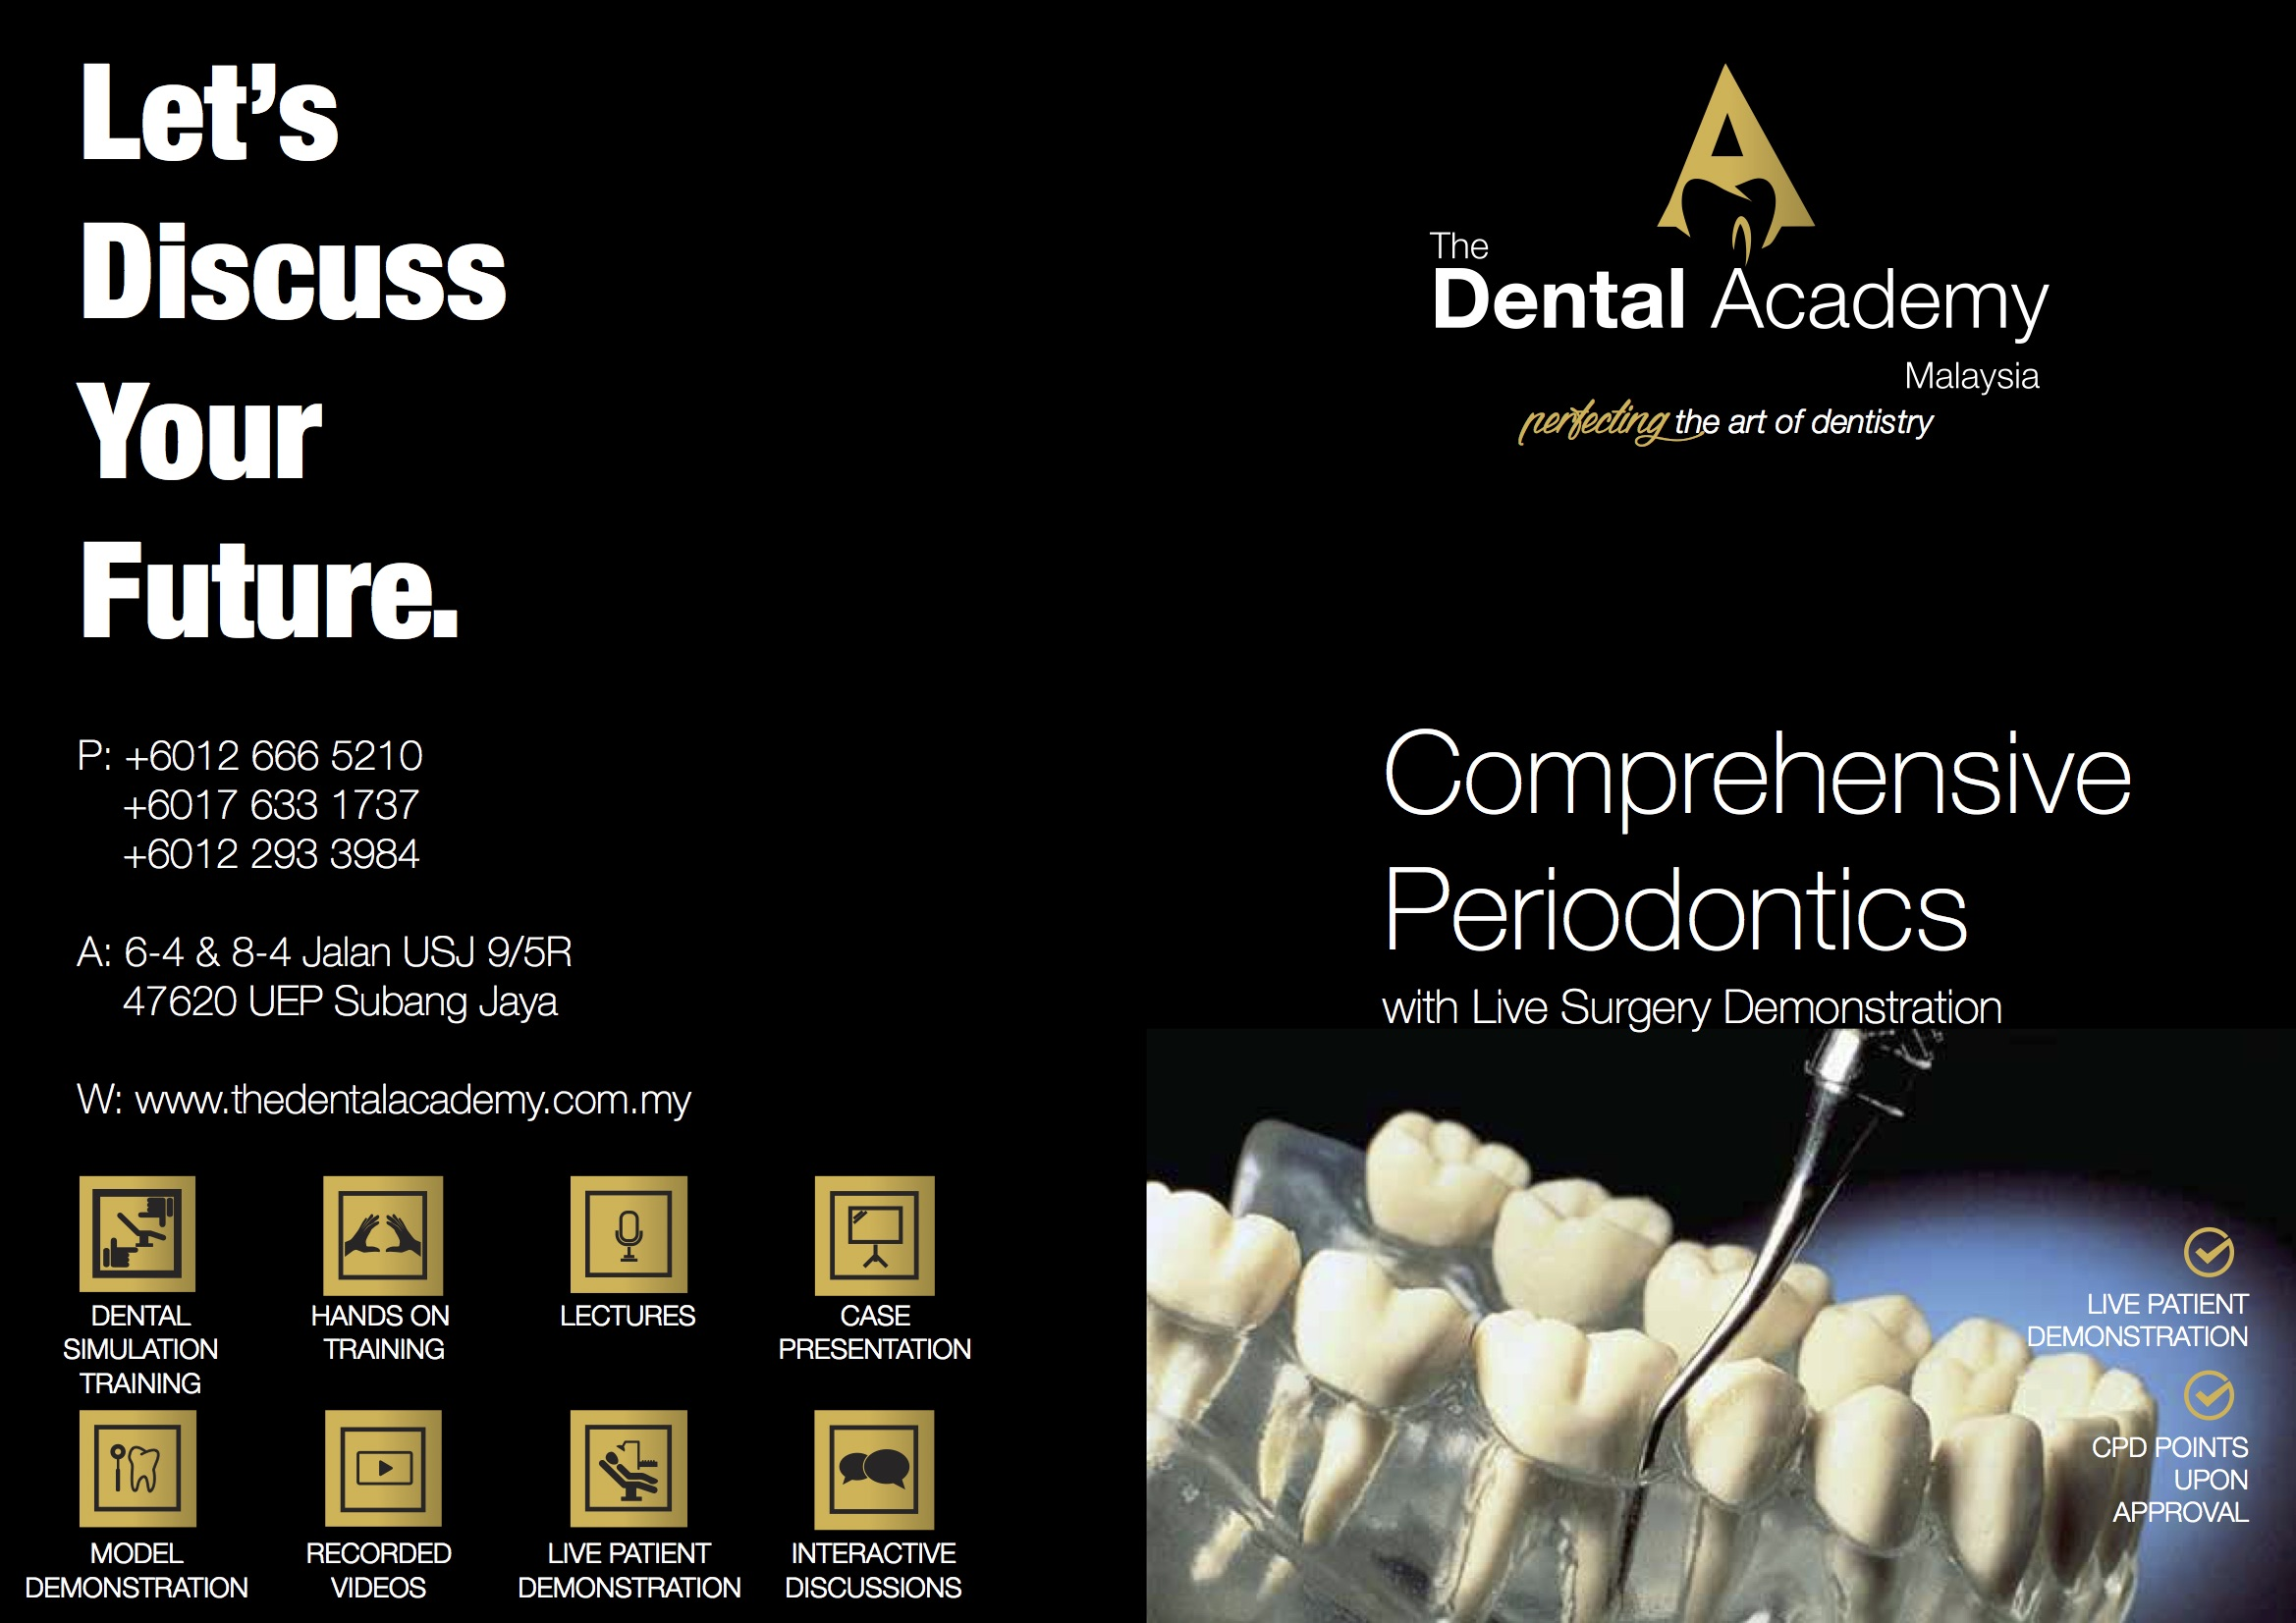 ComprehensivePeriodontics-Flyer-1